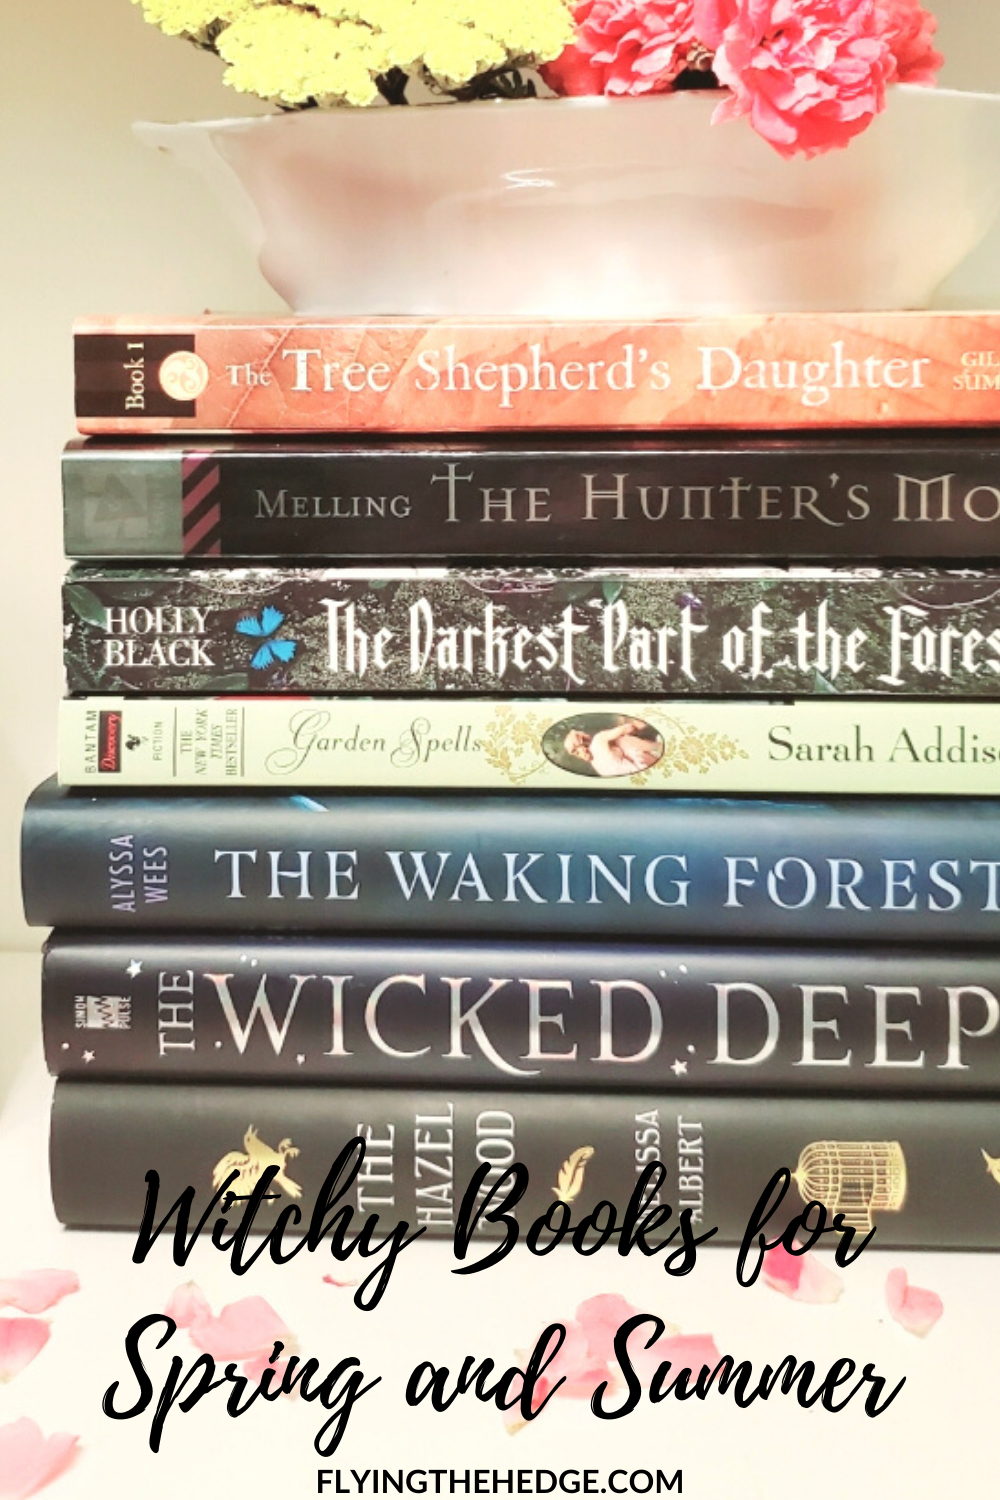 witch, books, reading, summer, witchy, witchy reads, occult